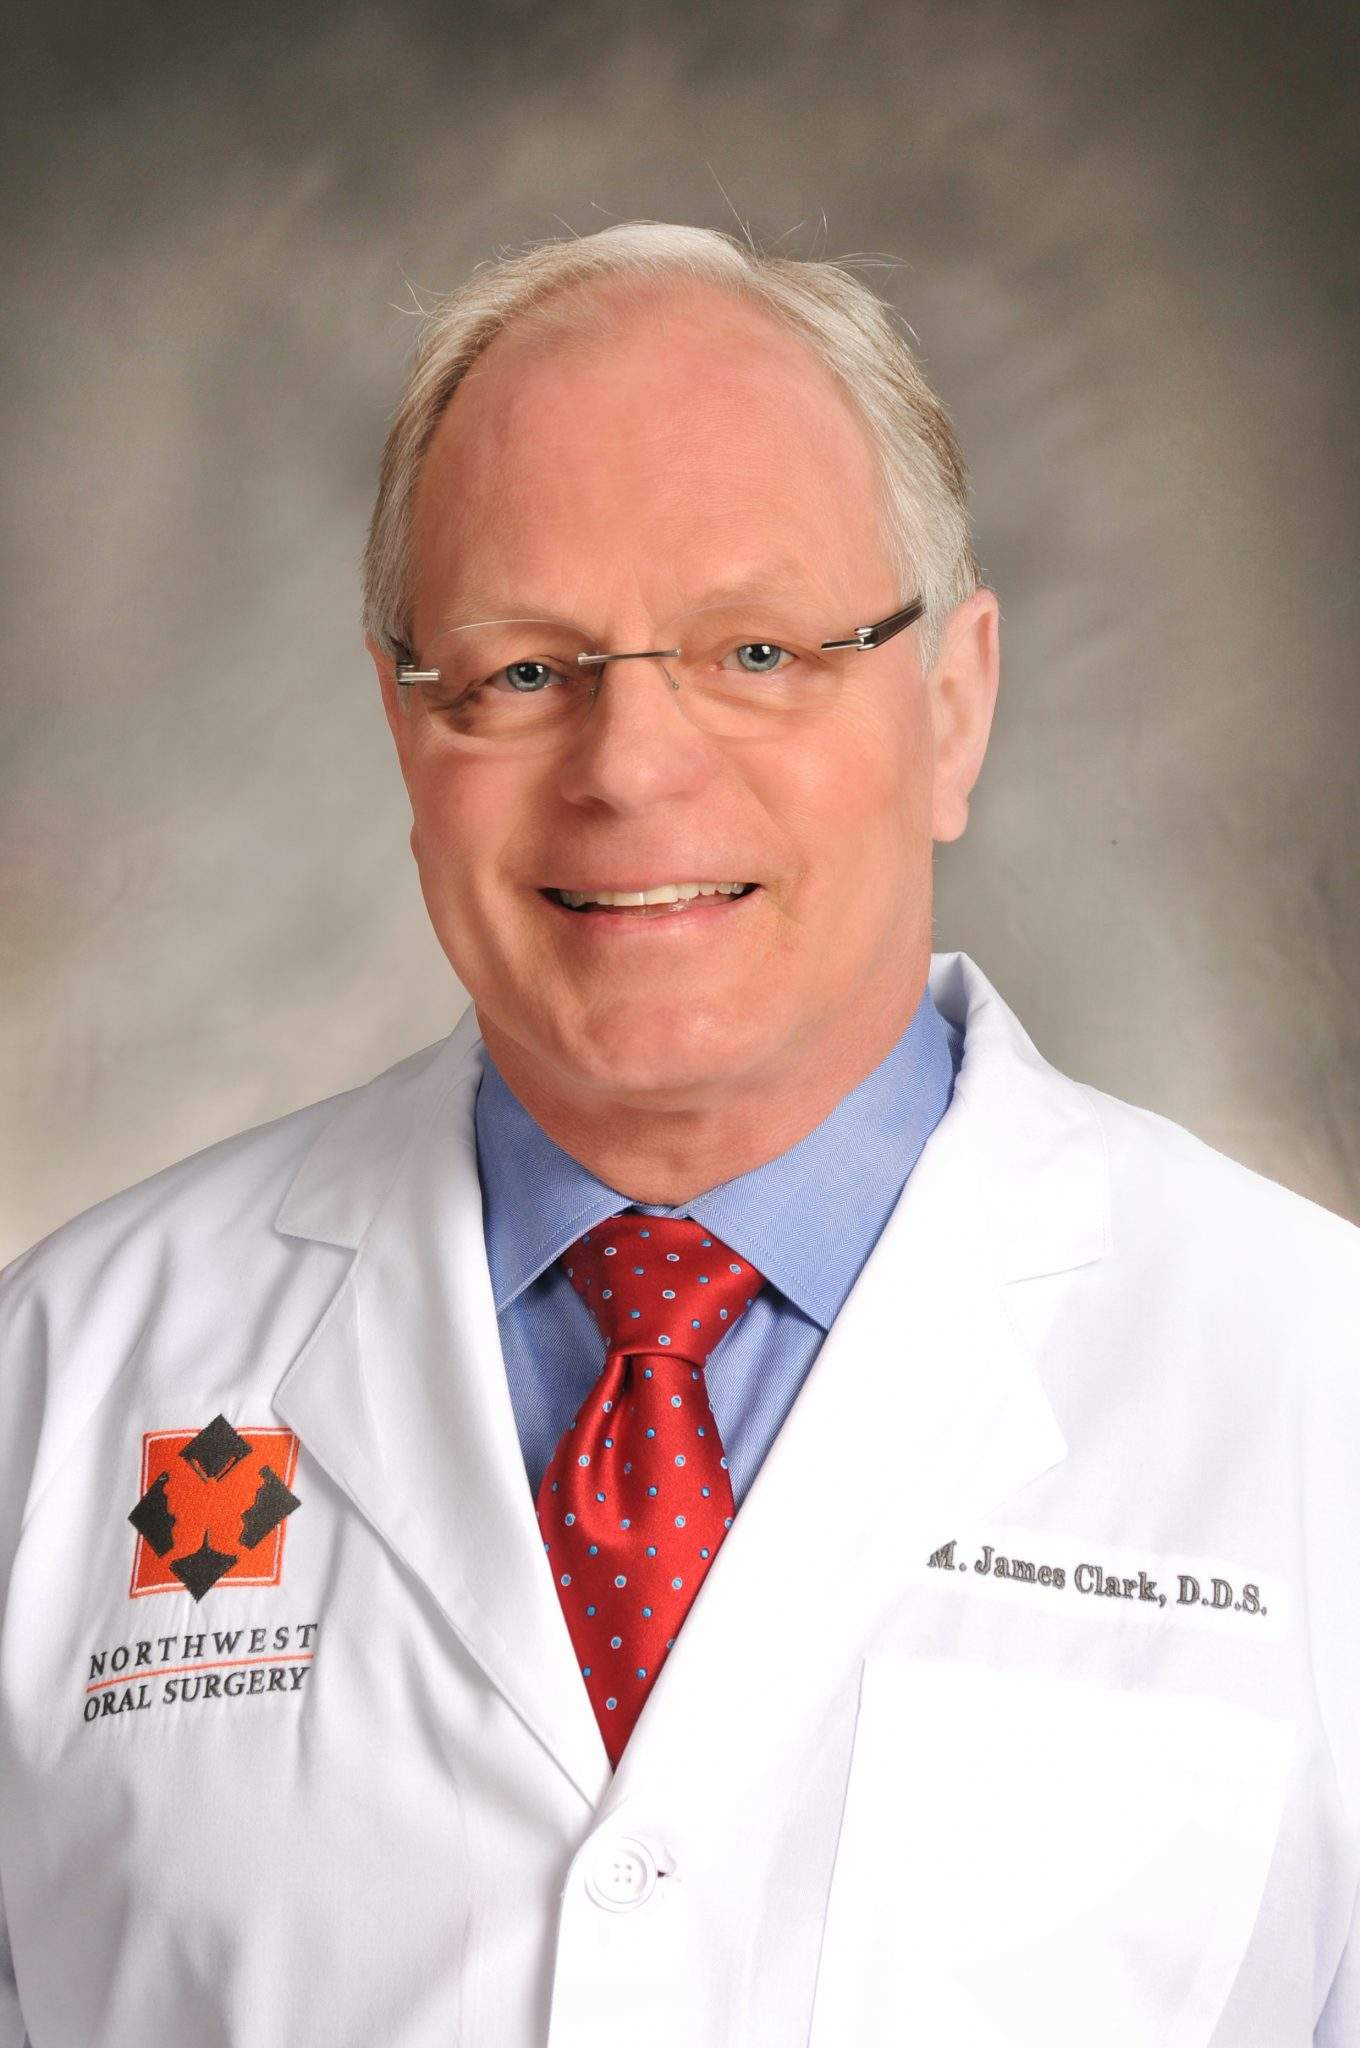 Dr Clark - Northwest Oral & Maxillofacial Surgery